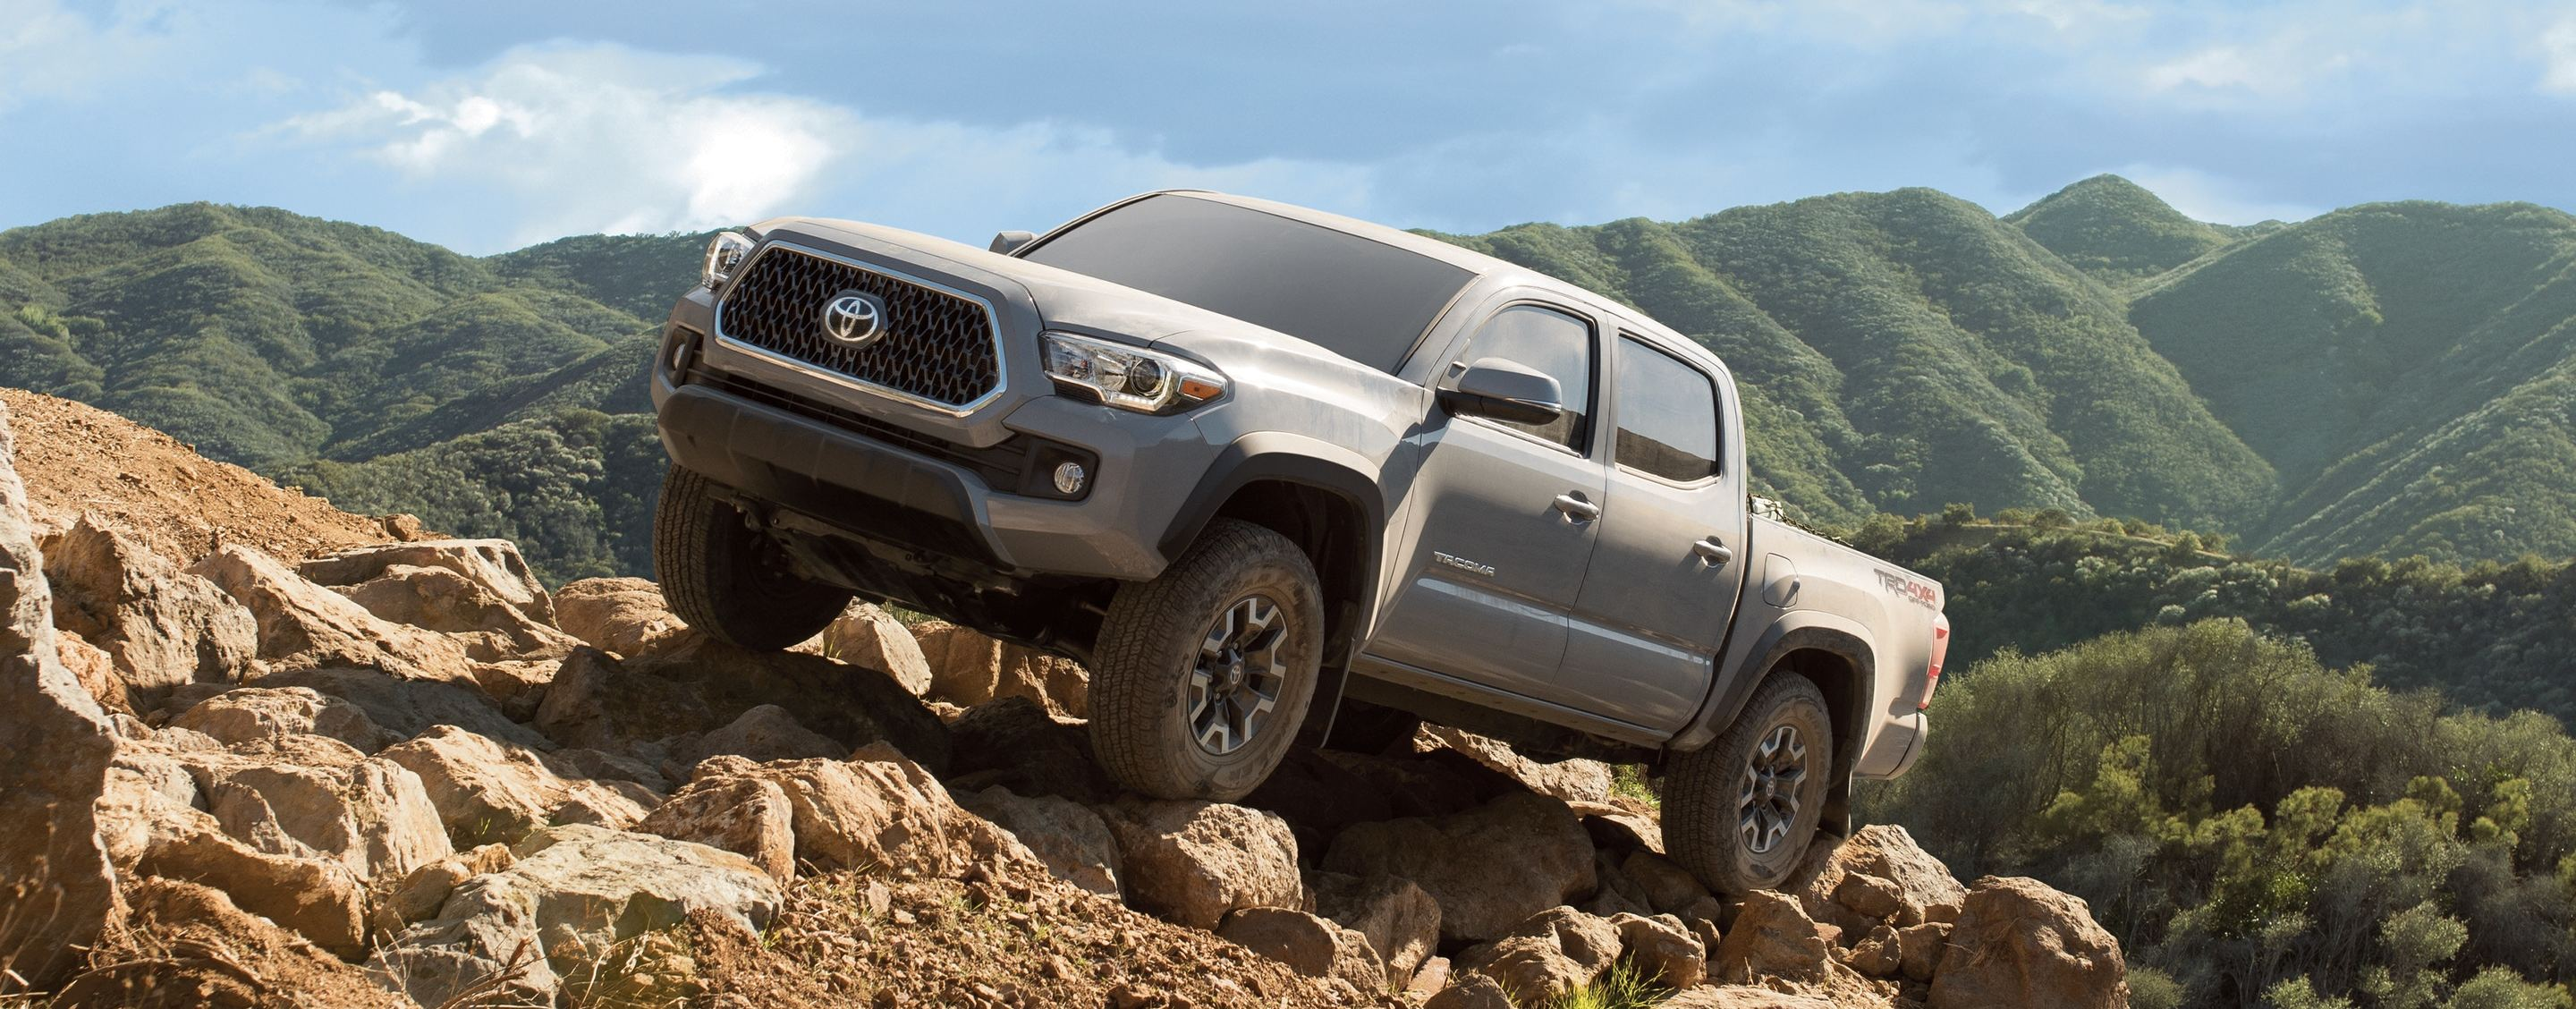 Tacoma Towing Capacity >> 2019 Toyota Tacoma For Sale Near Bridgewater Nj